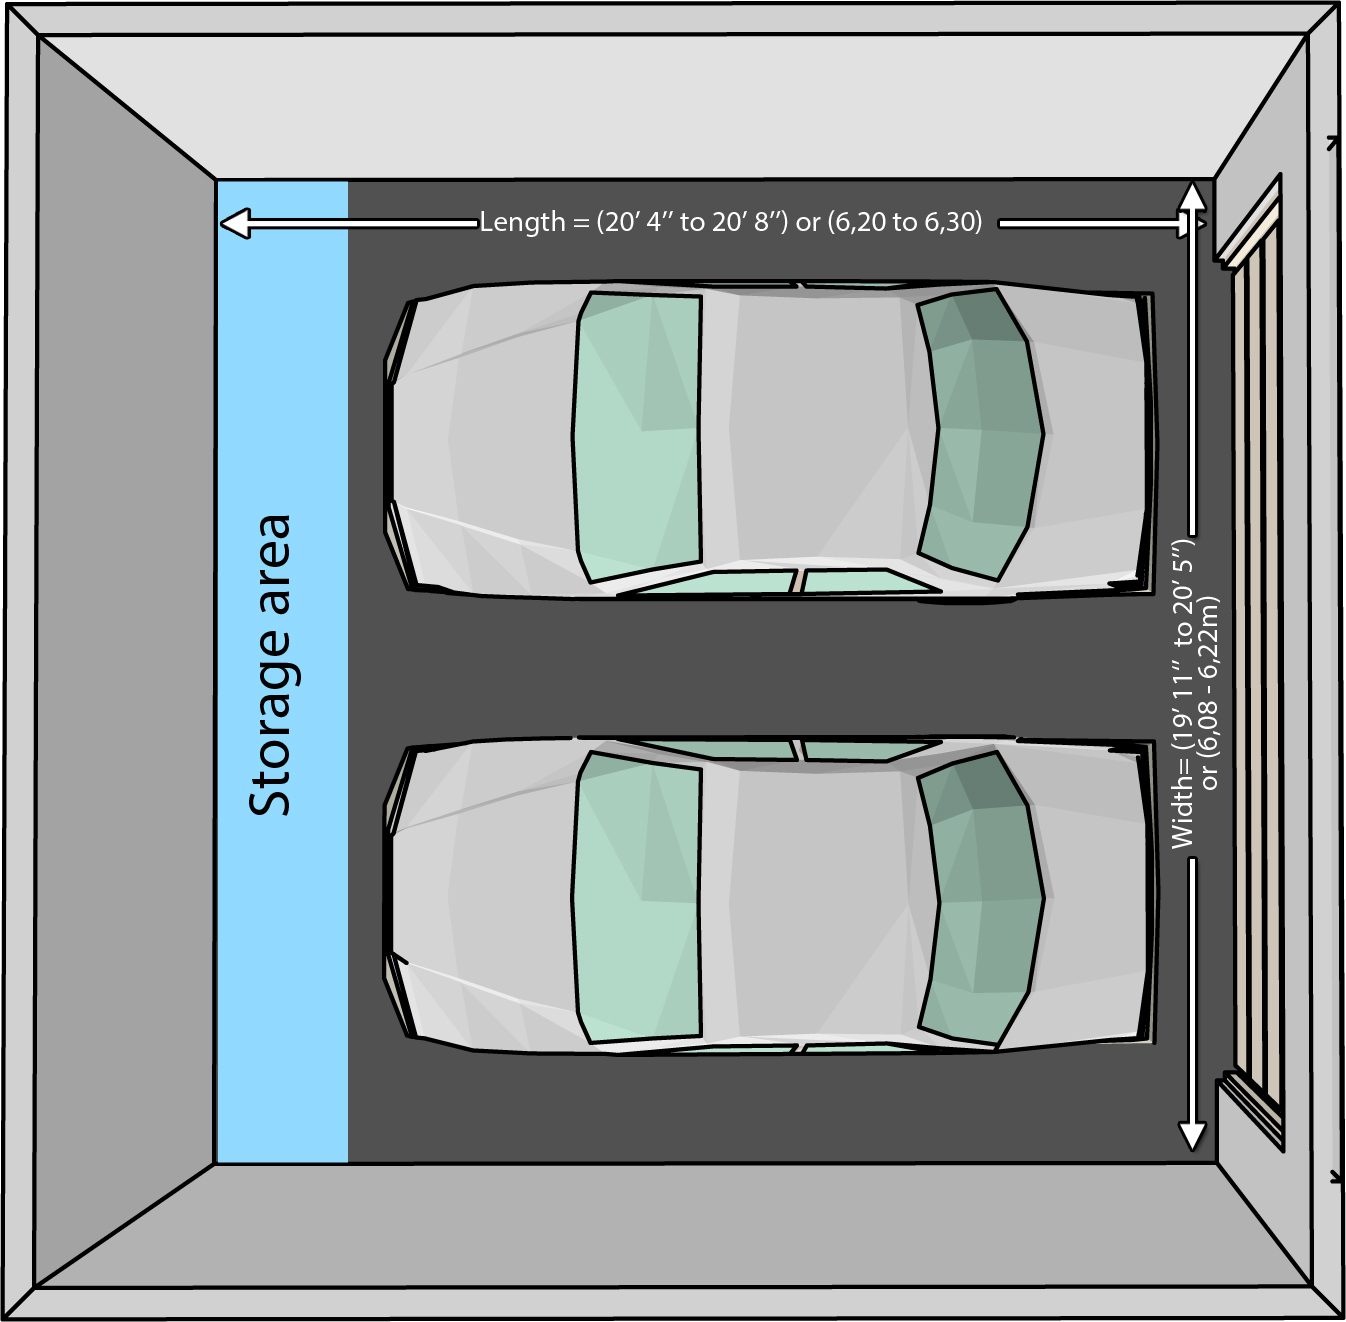 Lovable Dimensions An One Car A Two Car Two Car Size 2 Car Size Australia houzz-02 Two Car Garage Size